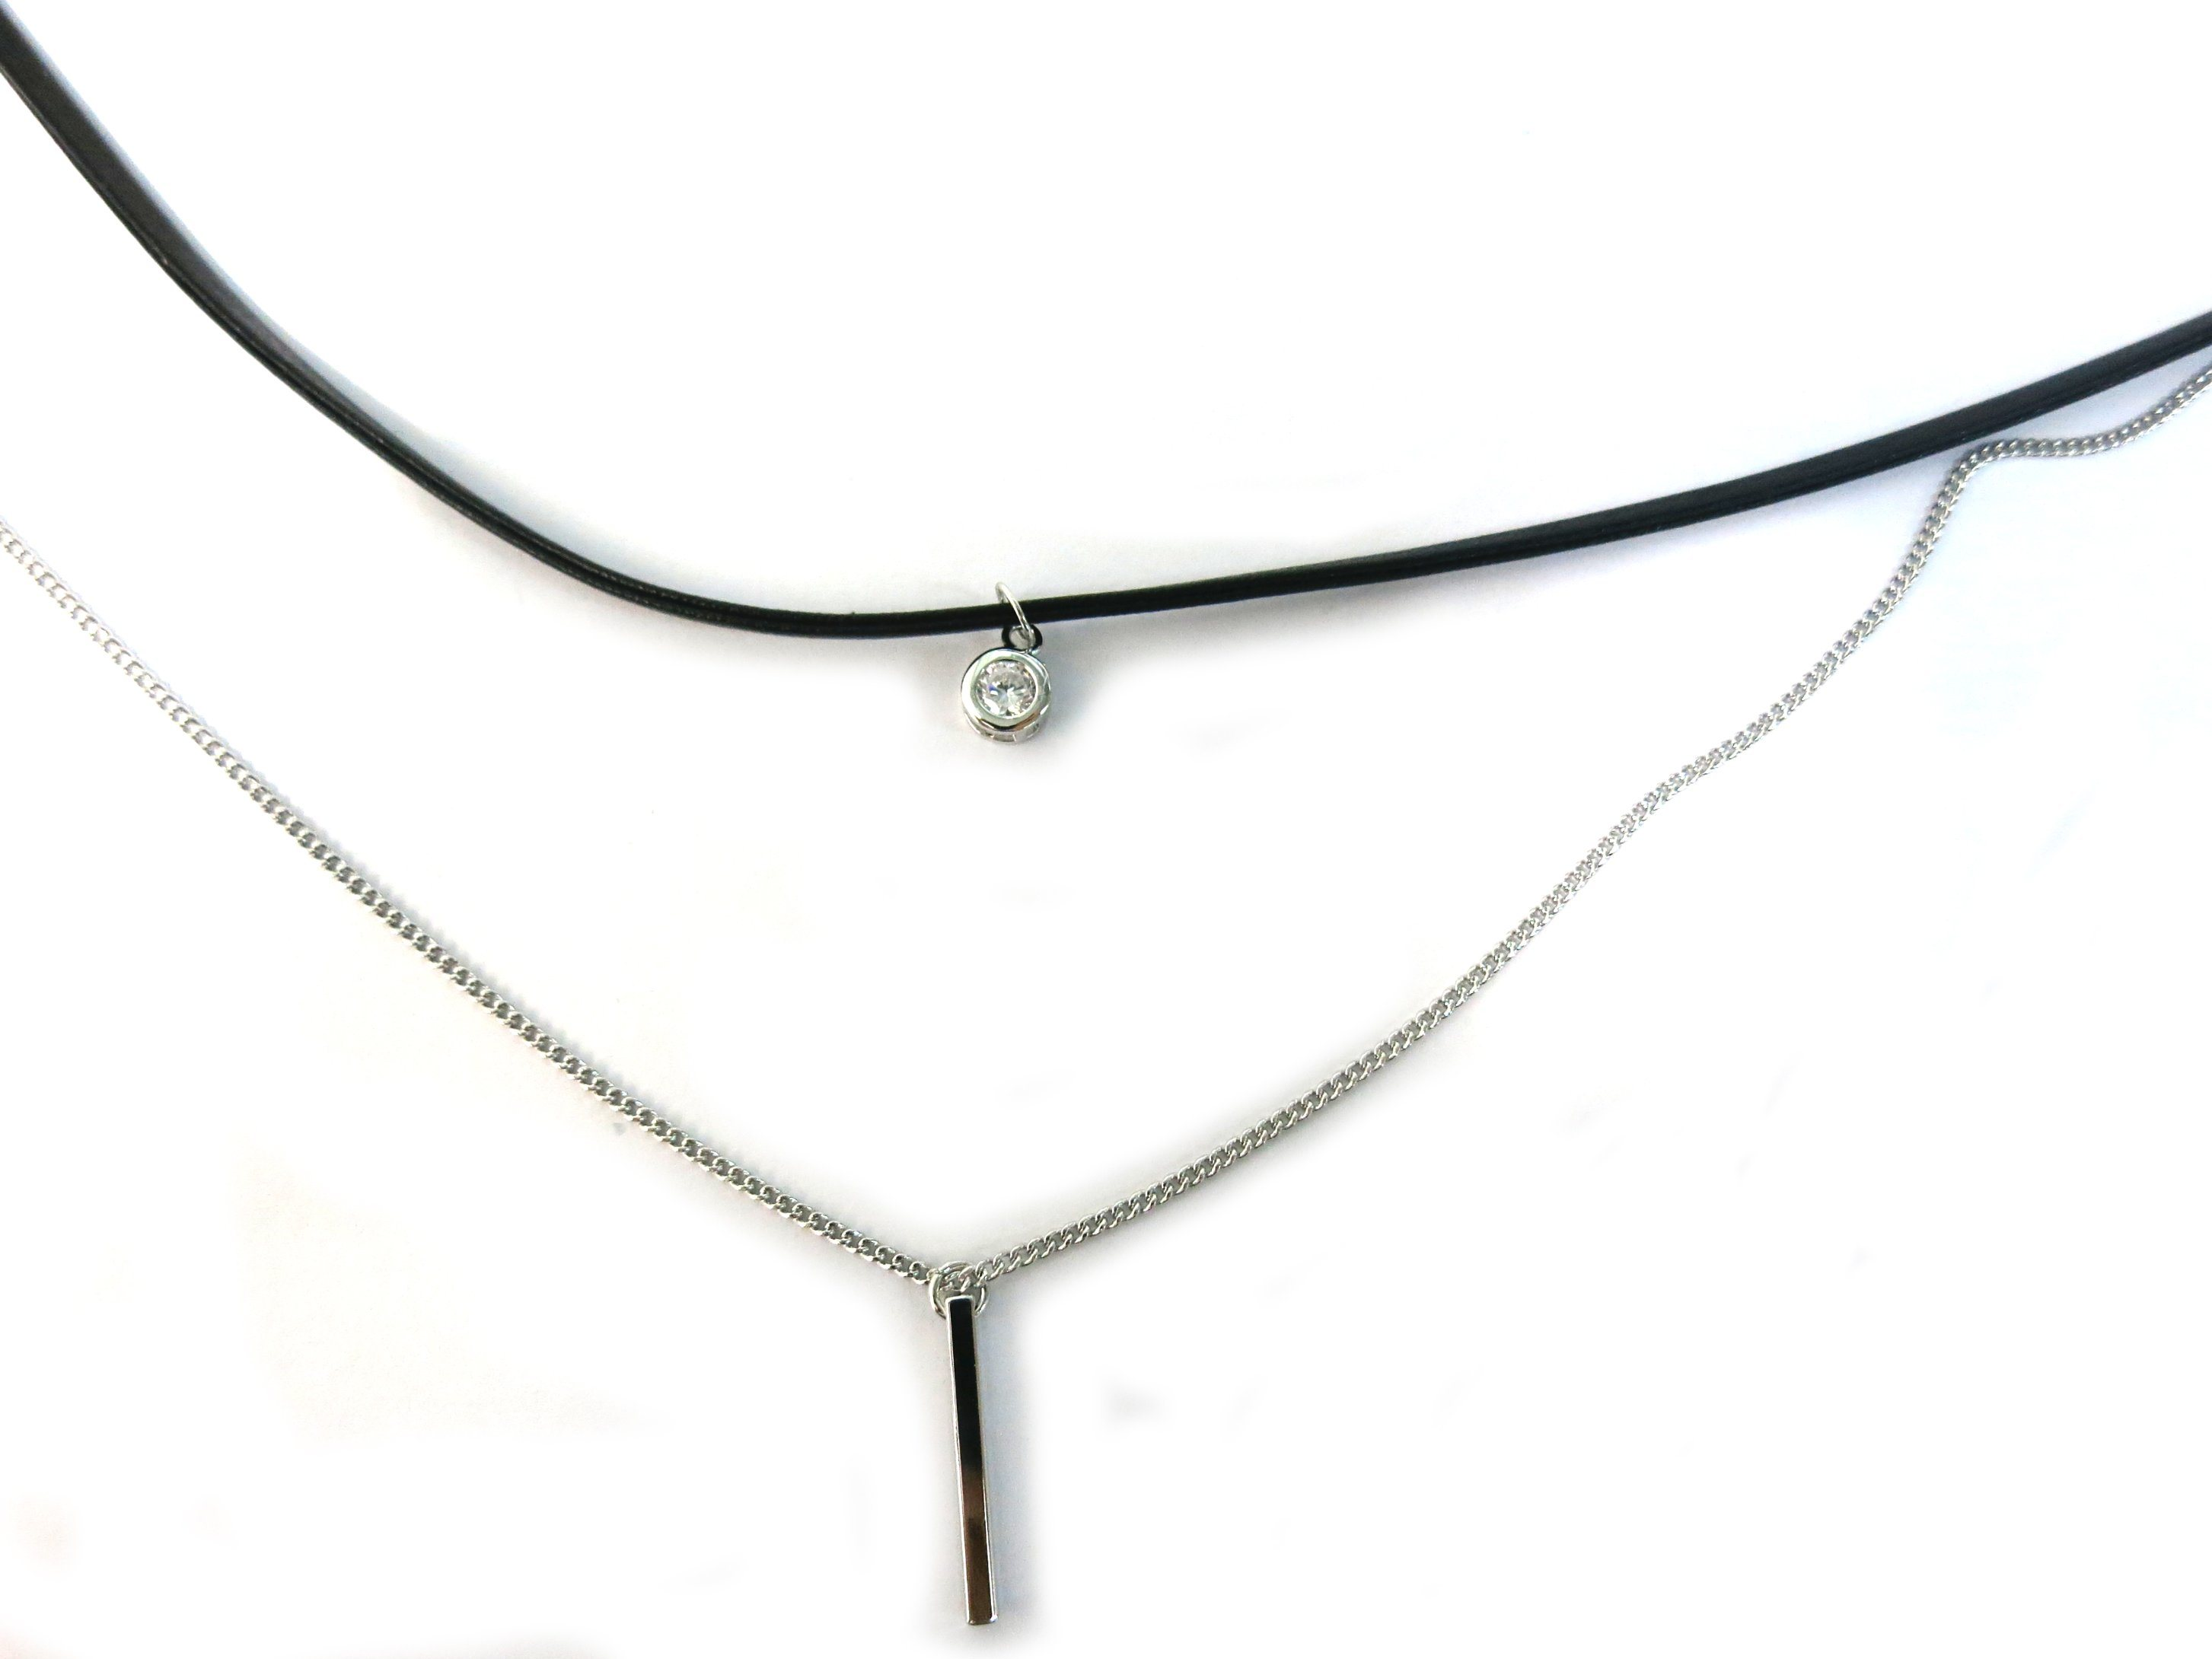 2016 Factory Direct Price 925 Silver Sterling Leather Necklace (N6859)